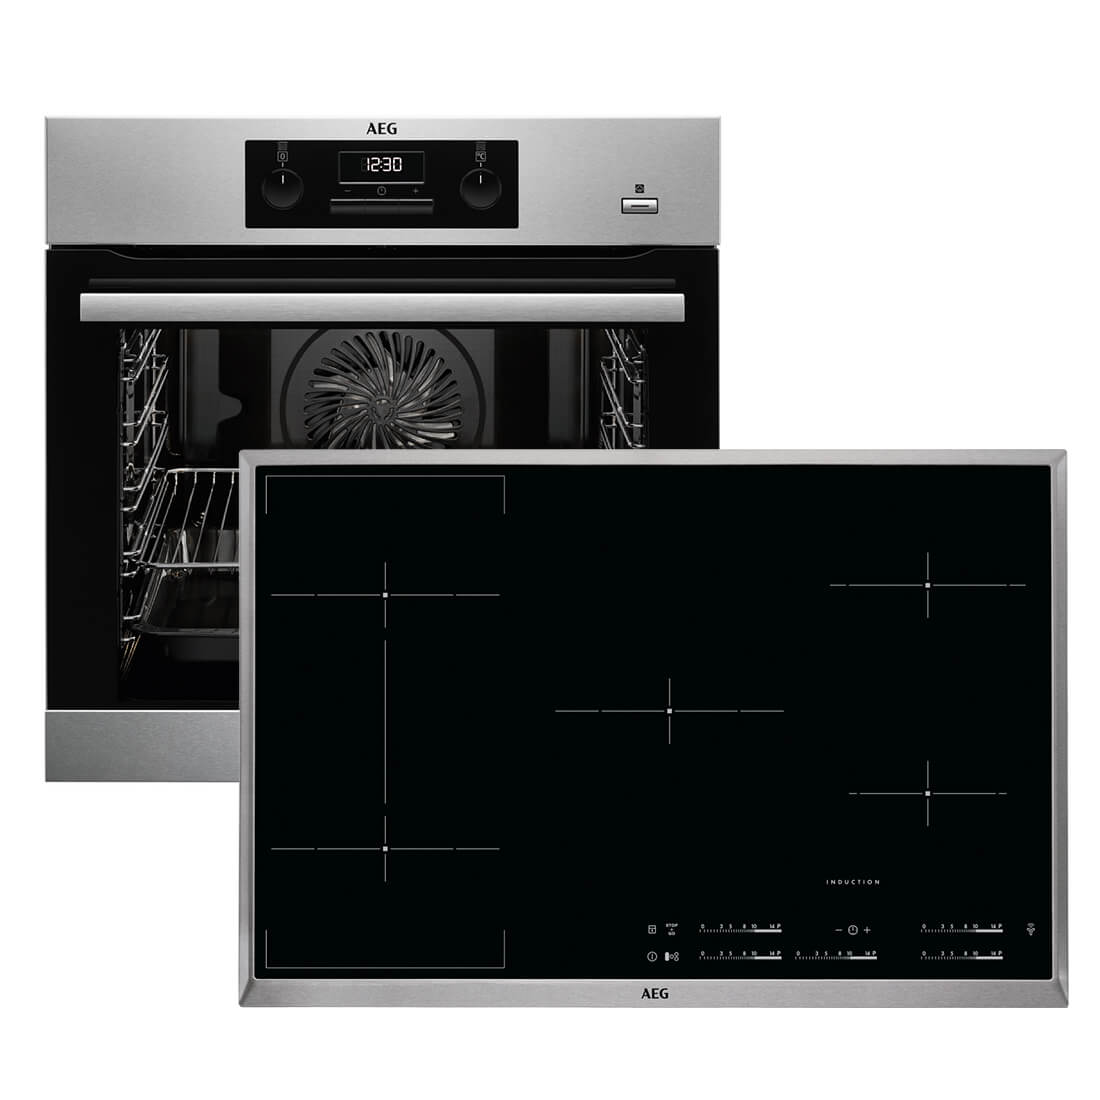 aeg beb357 backofen set beb351010m backofen hkl85510x. Black Bedroom Furniture Sets. Home Design Ideas